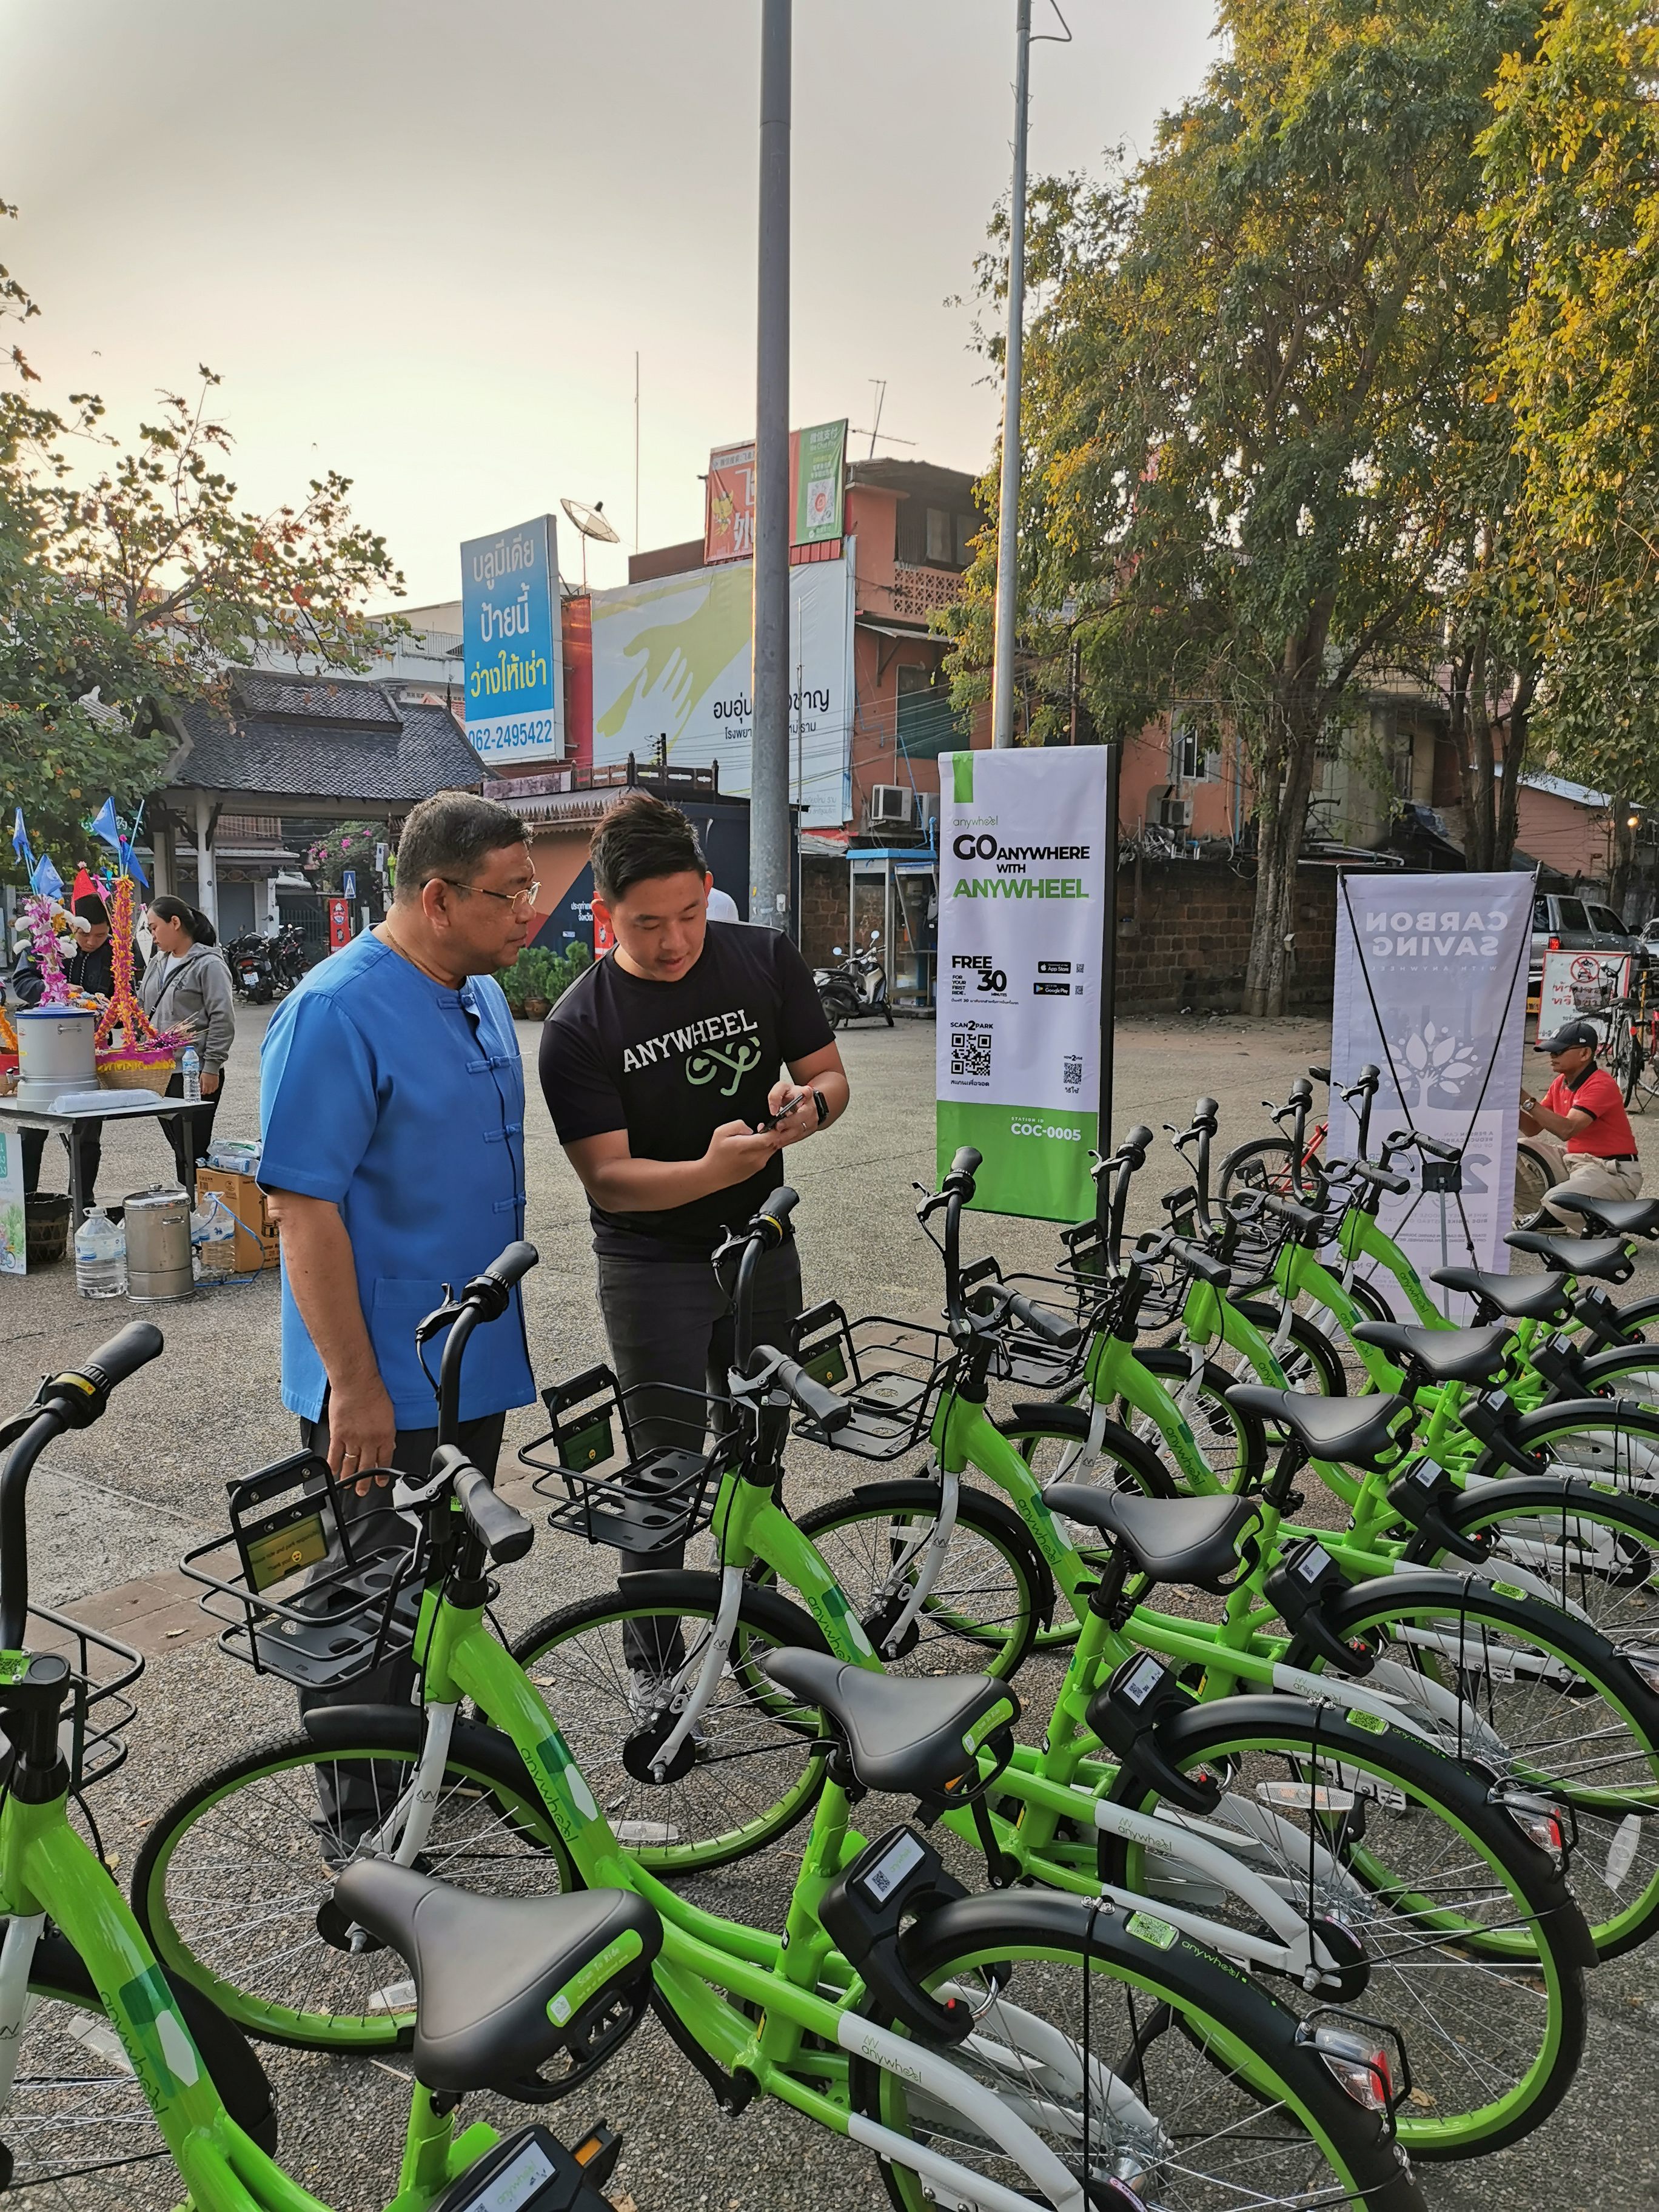 Anywheel founder & CEO Htay Aung demonstrating to Chiang Mai governor Charoen Sanguansat how to use Anywheel app